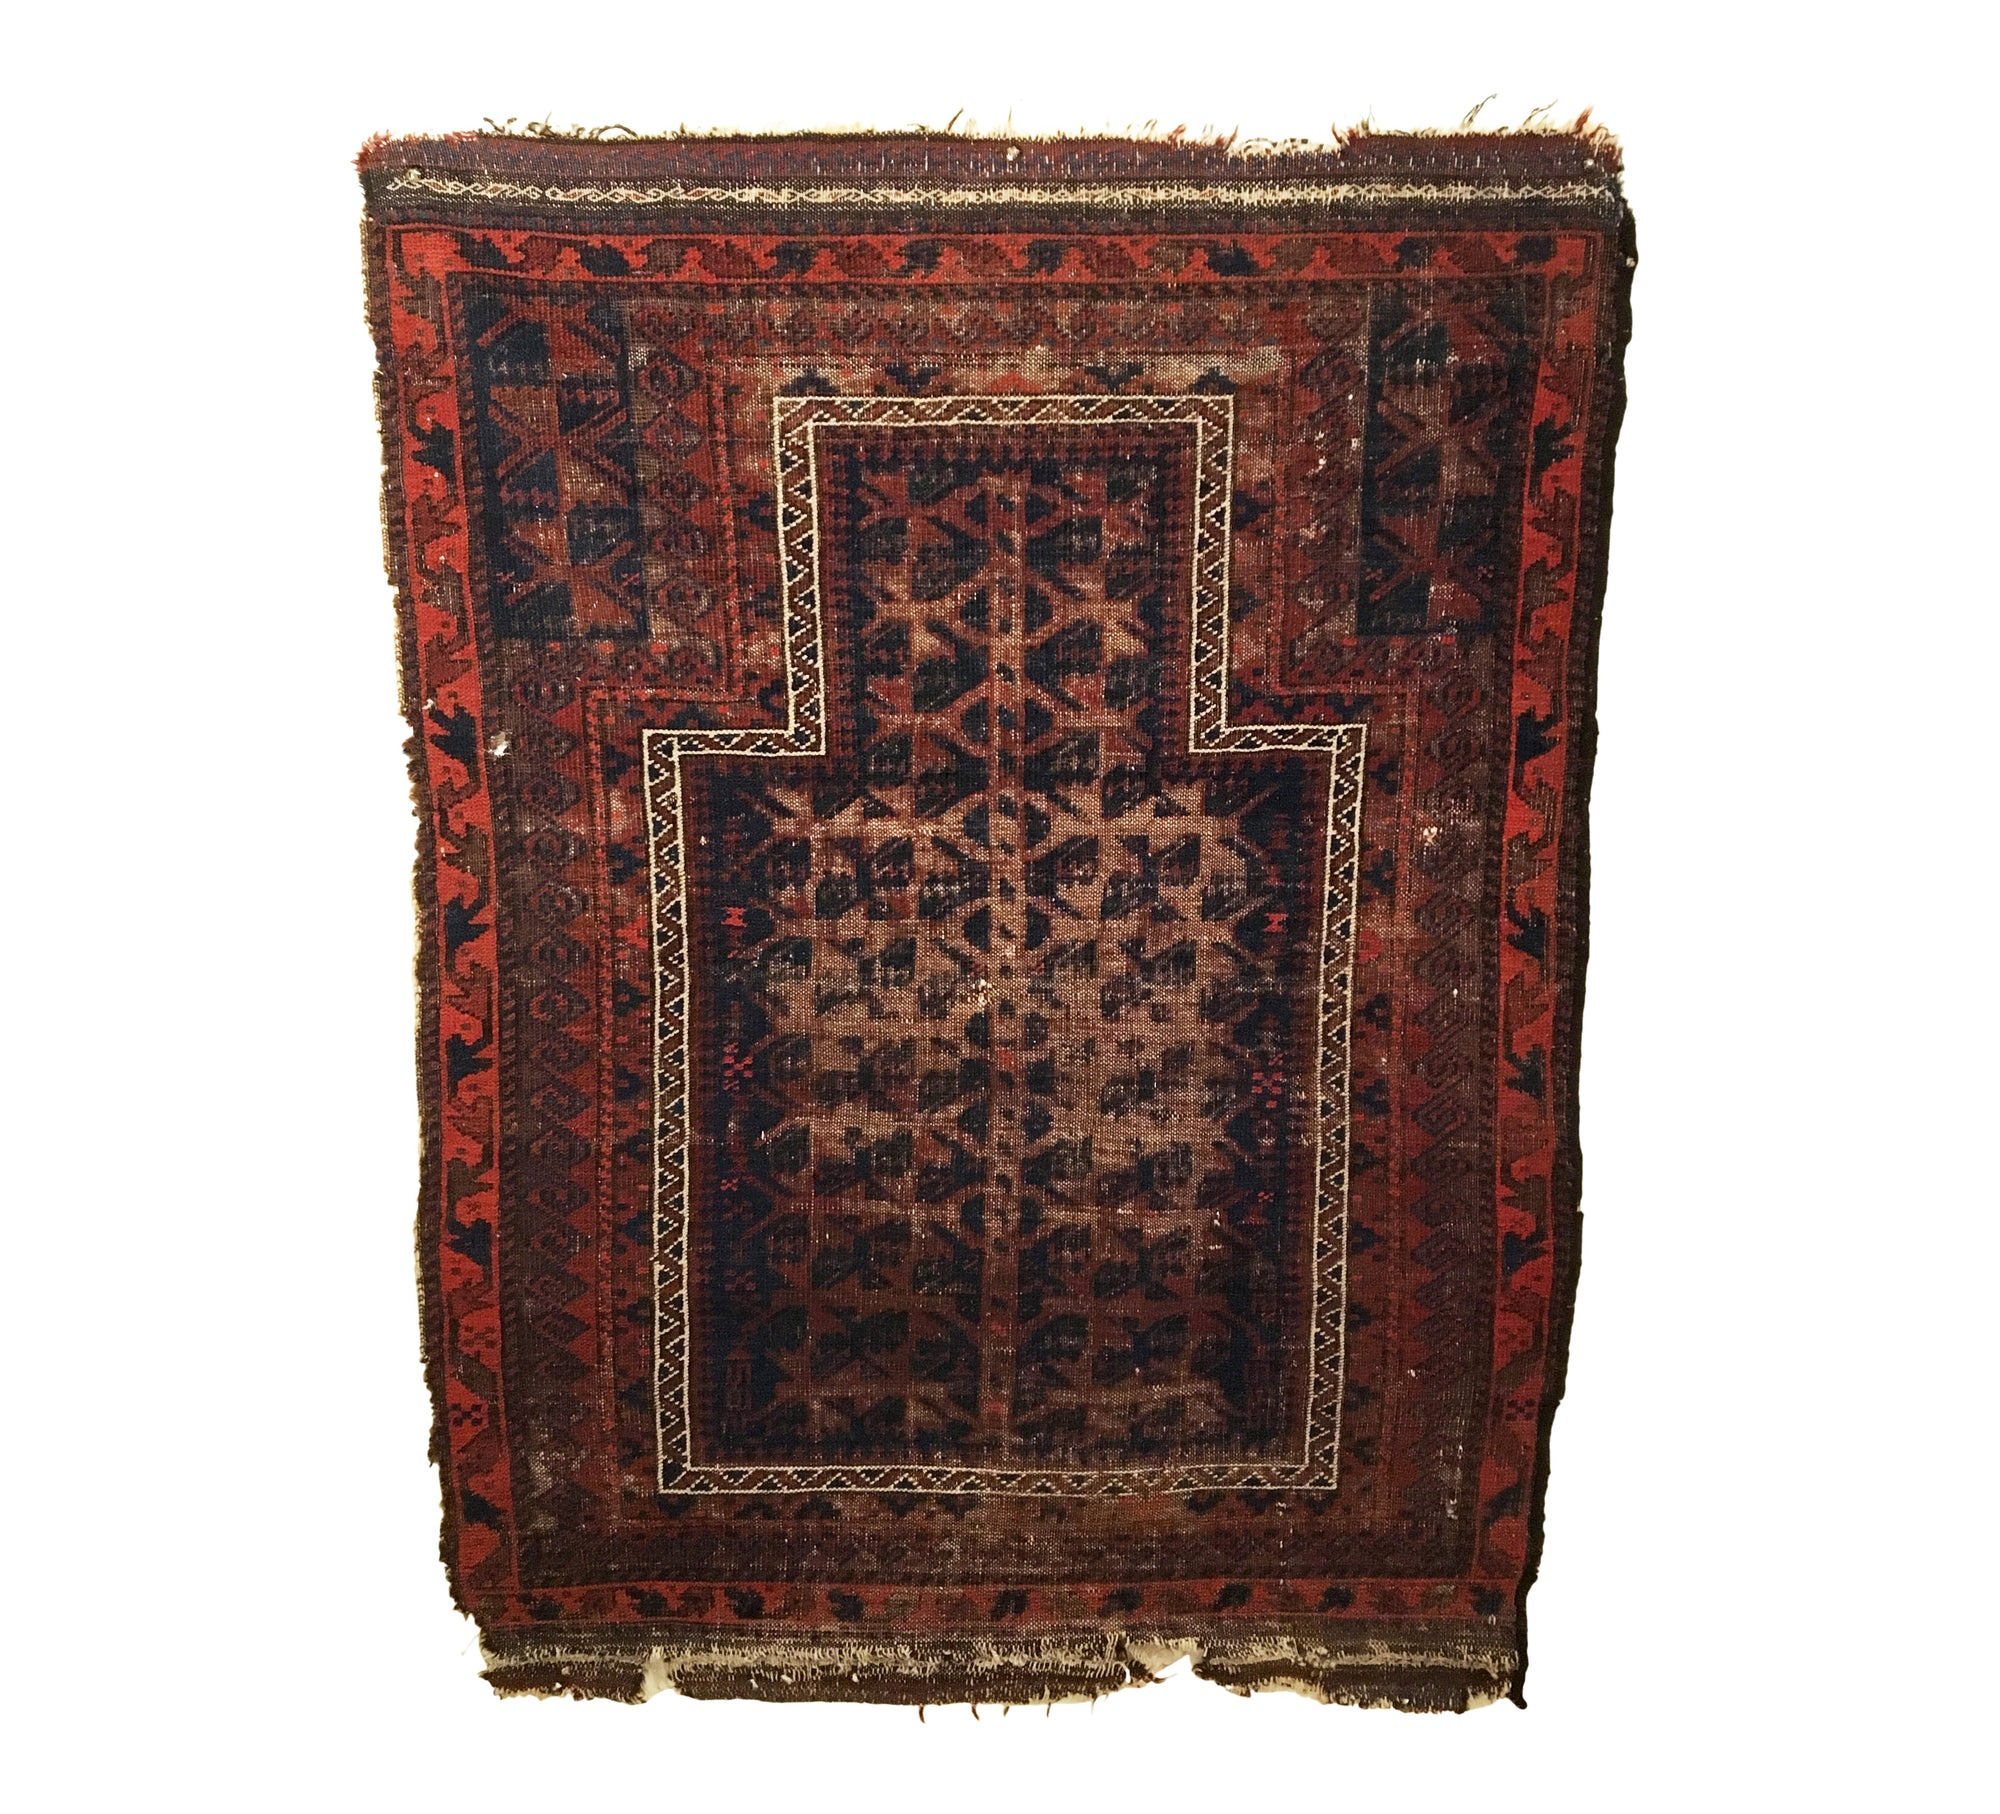 Antique Afghan Baluch Tribal Rug 2'11 x 3'11